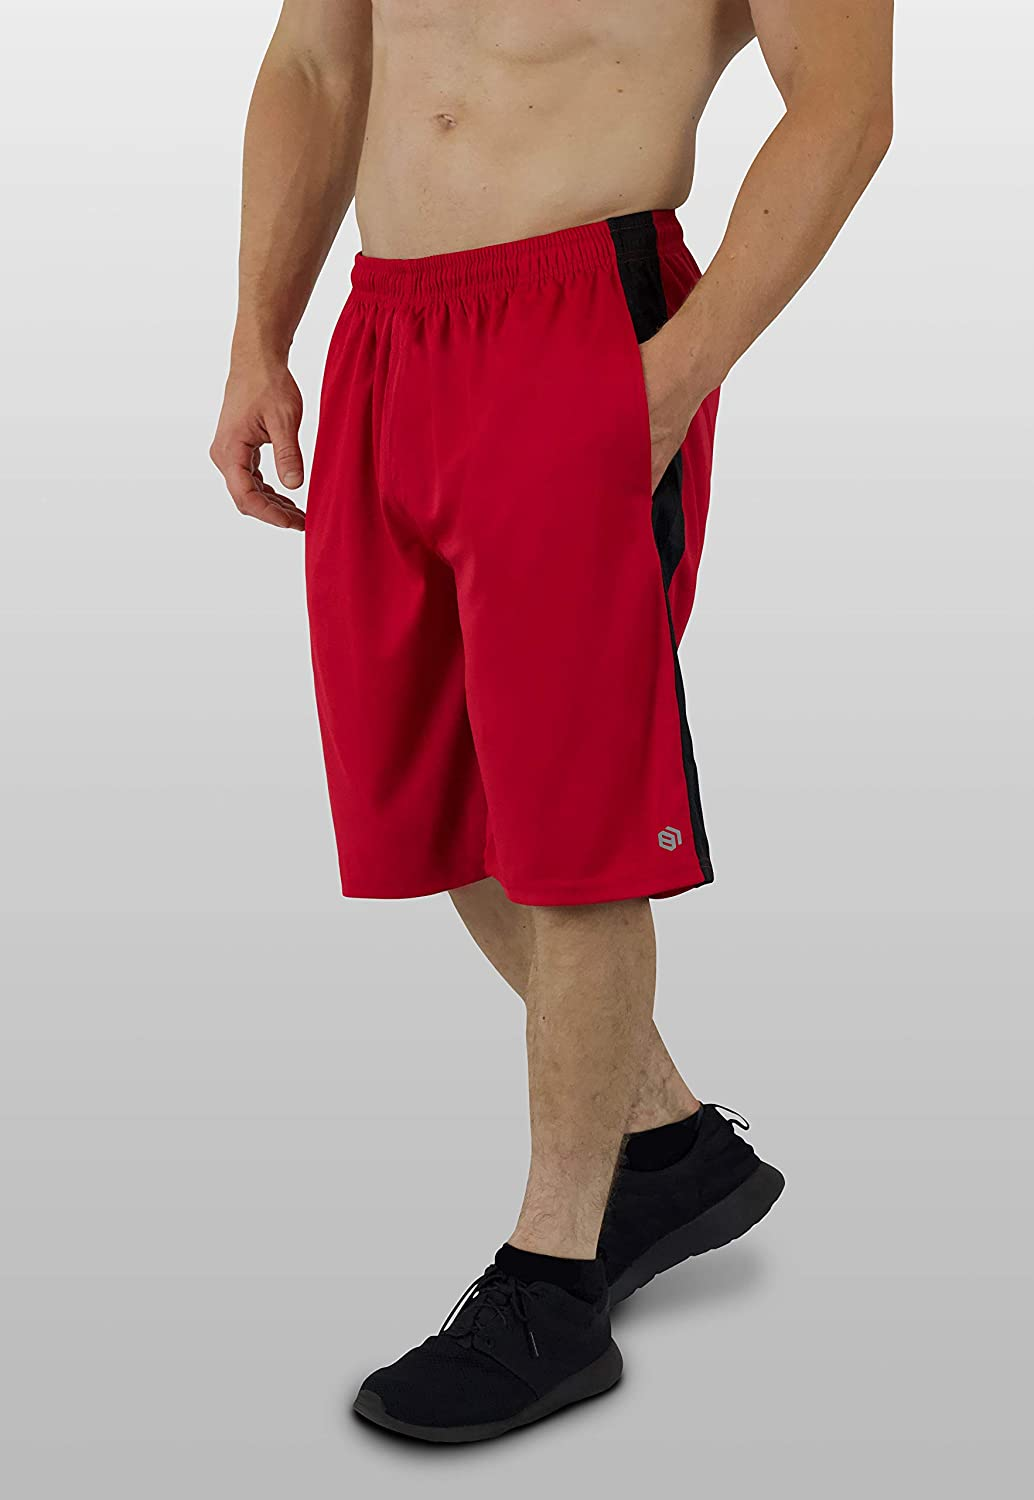 5 Pack Mens Premium Active Athletic Performance Shorts with Pockets